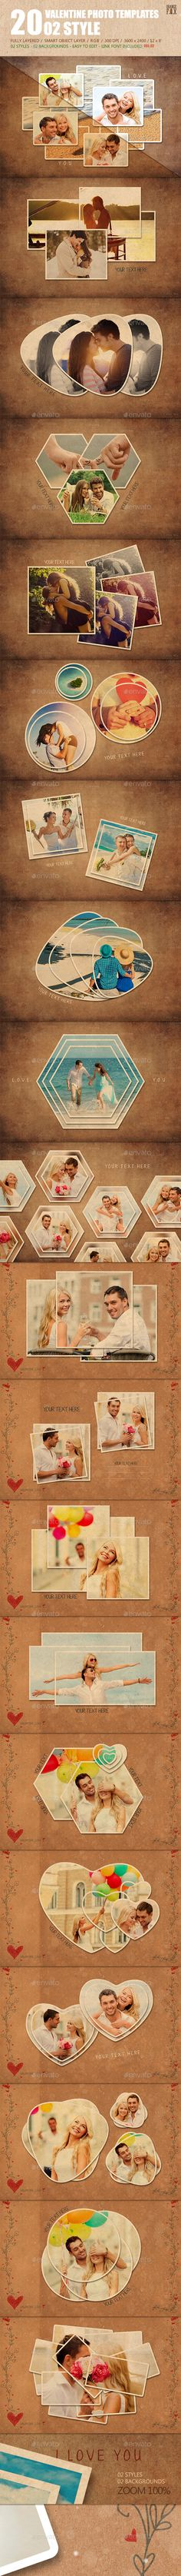 20 Valentine Photo Templates  Vol.02 — Photoshop PSD #greeting #seasonal • Available here → https://graphicriver.net/item/20-valentine-photo-templates-vol02/14541960?ref=pxcr